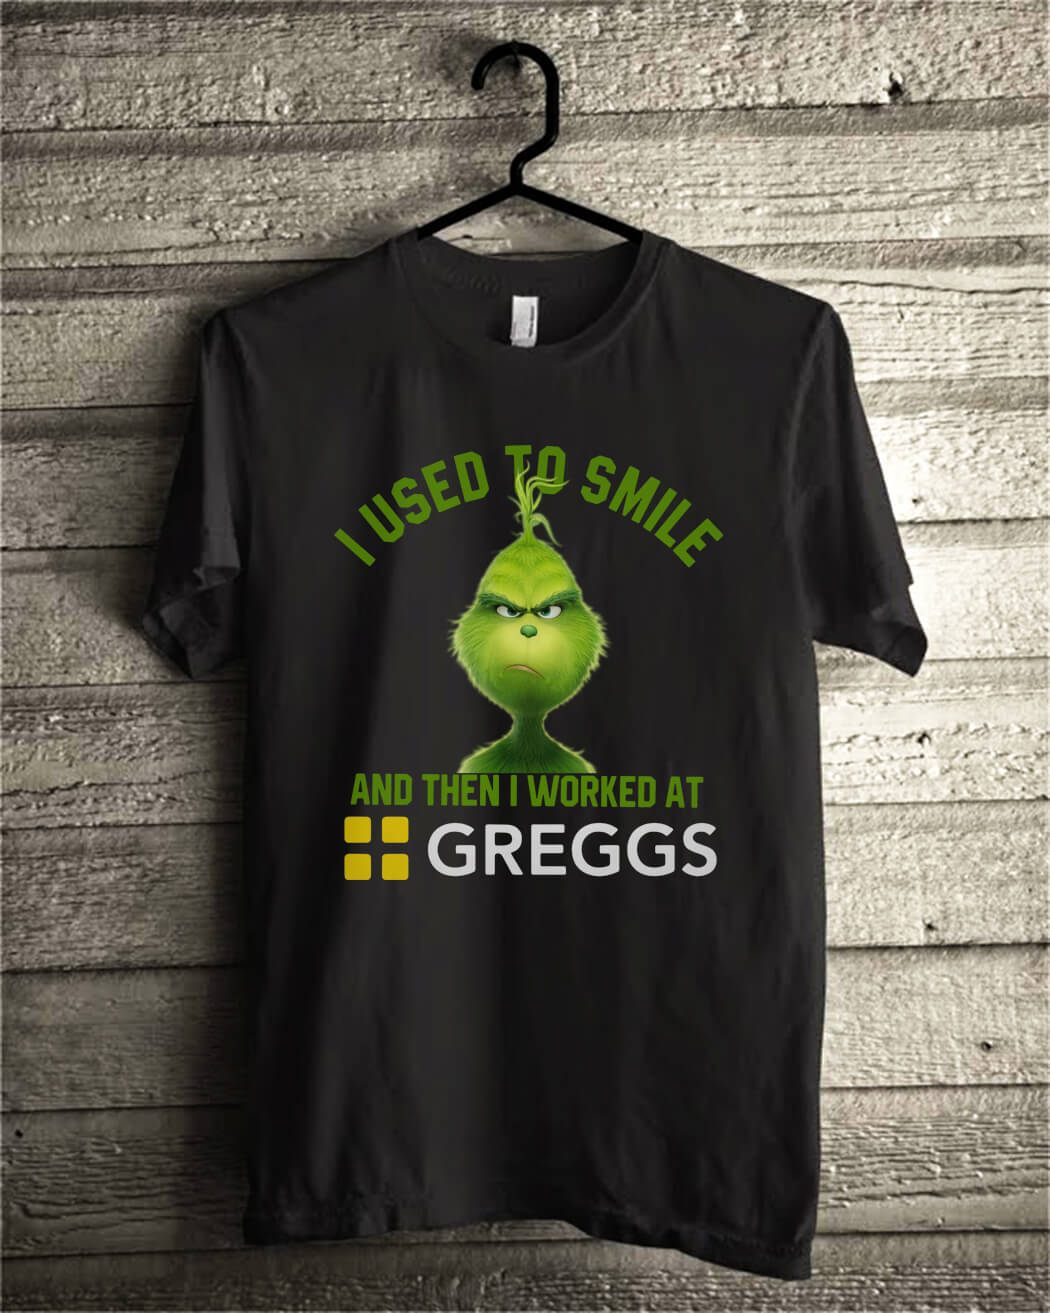 Grinch I used to smile and then I worked at Greggs shirt